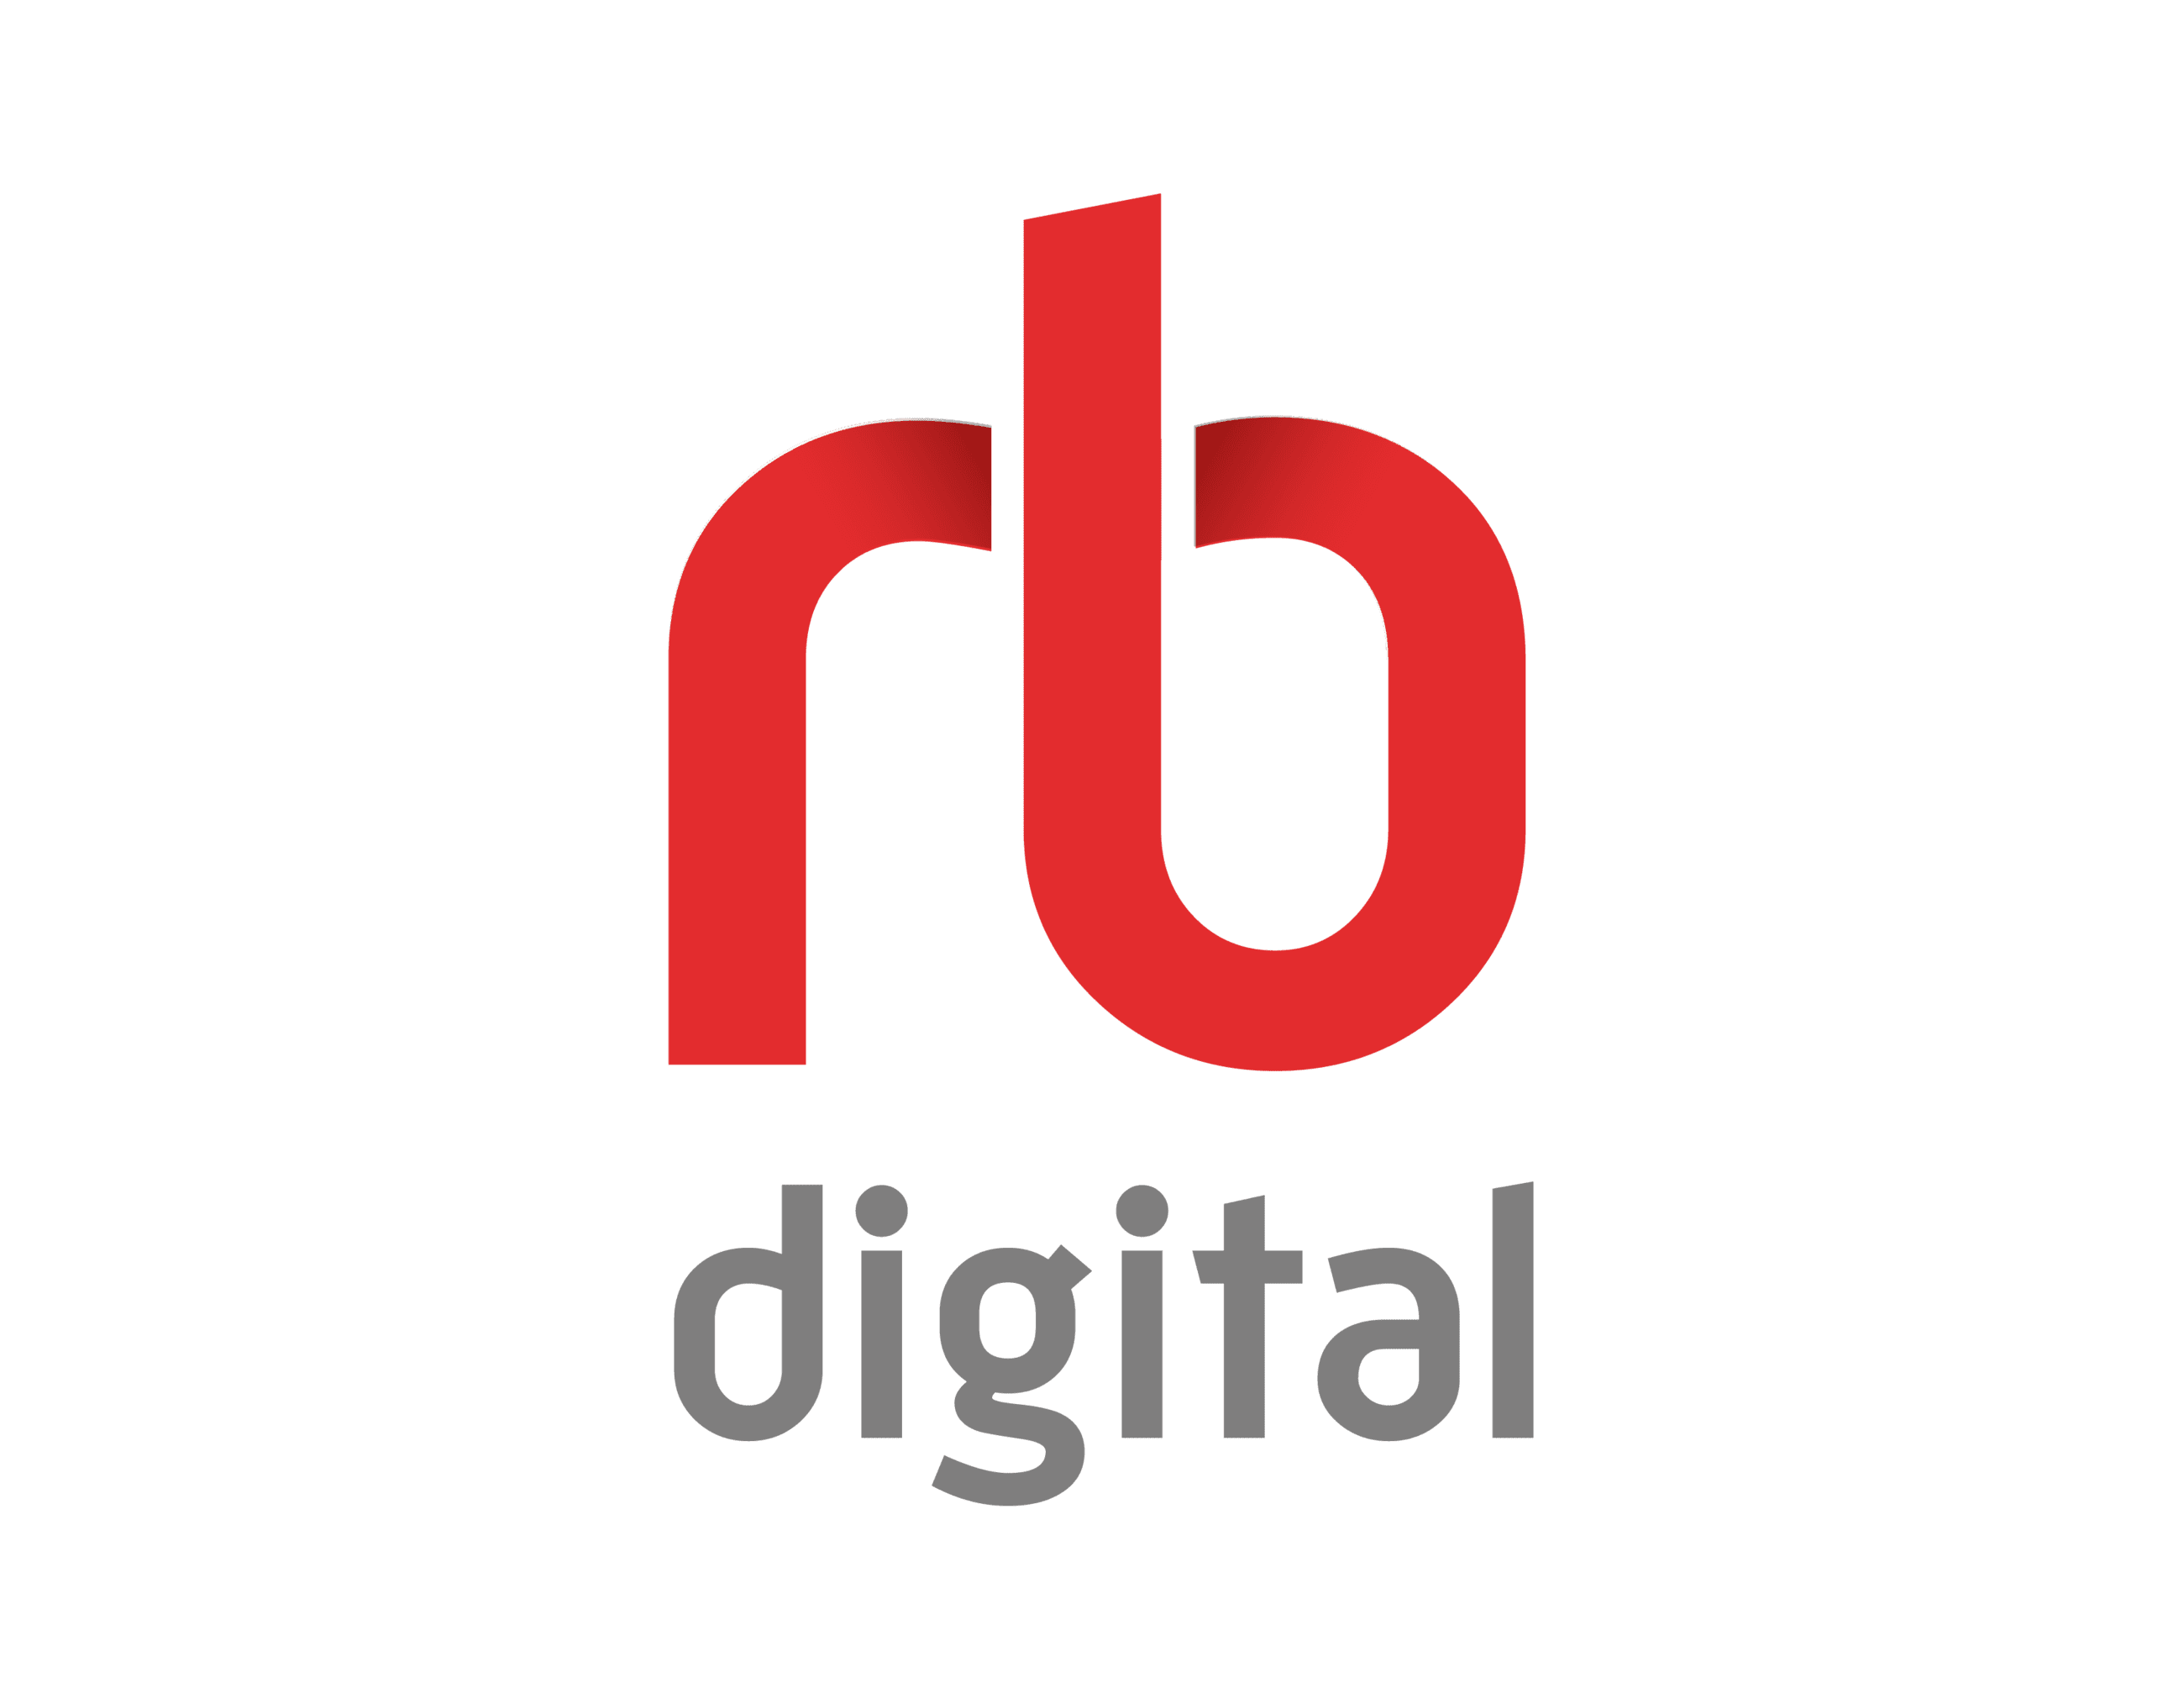 RBdigital logo - Opens in new window